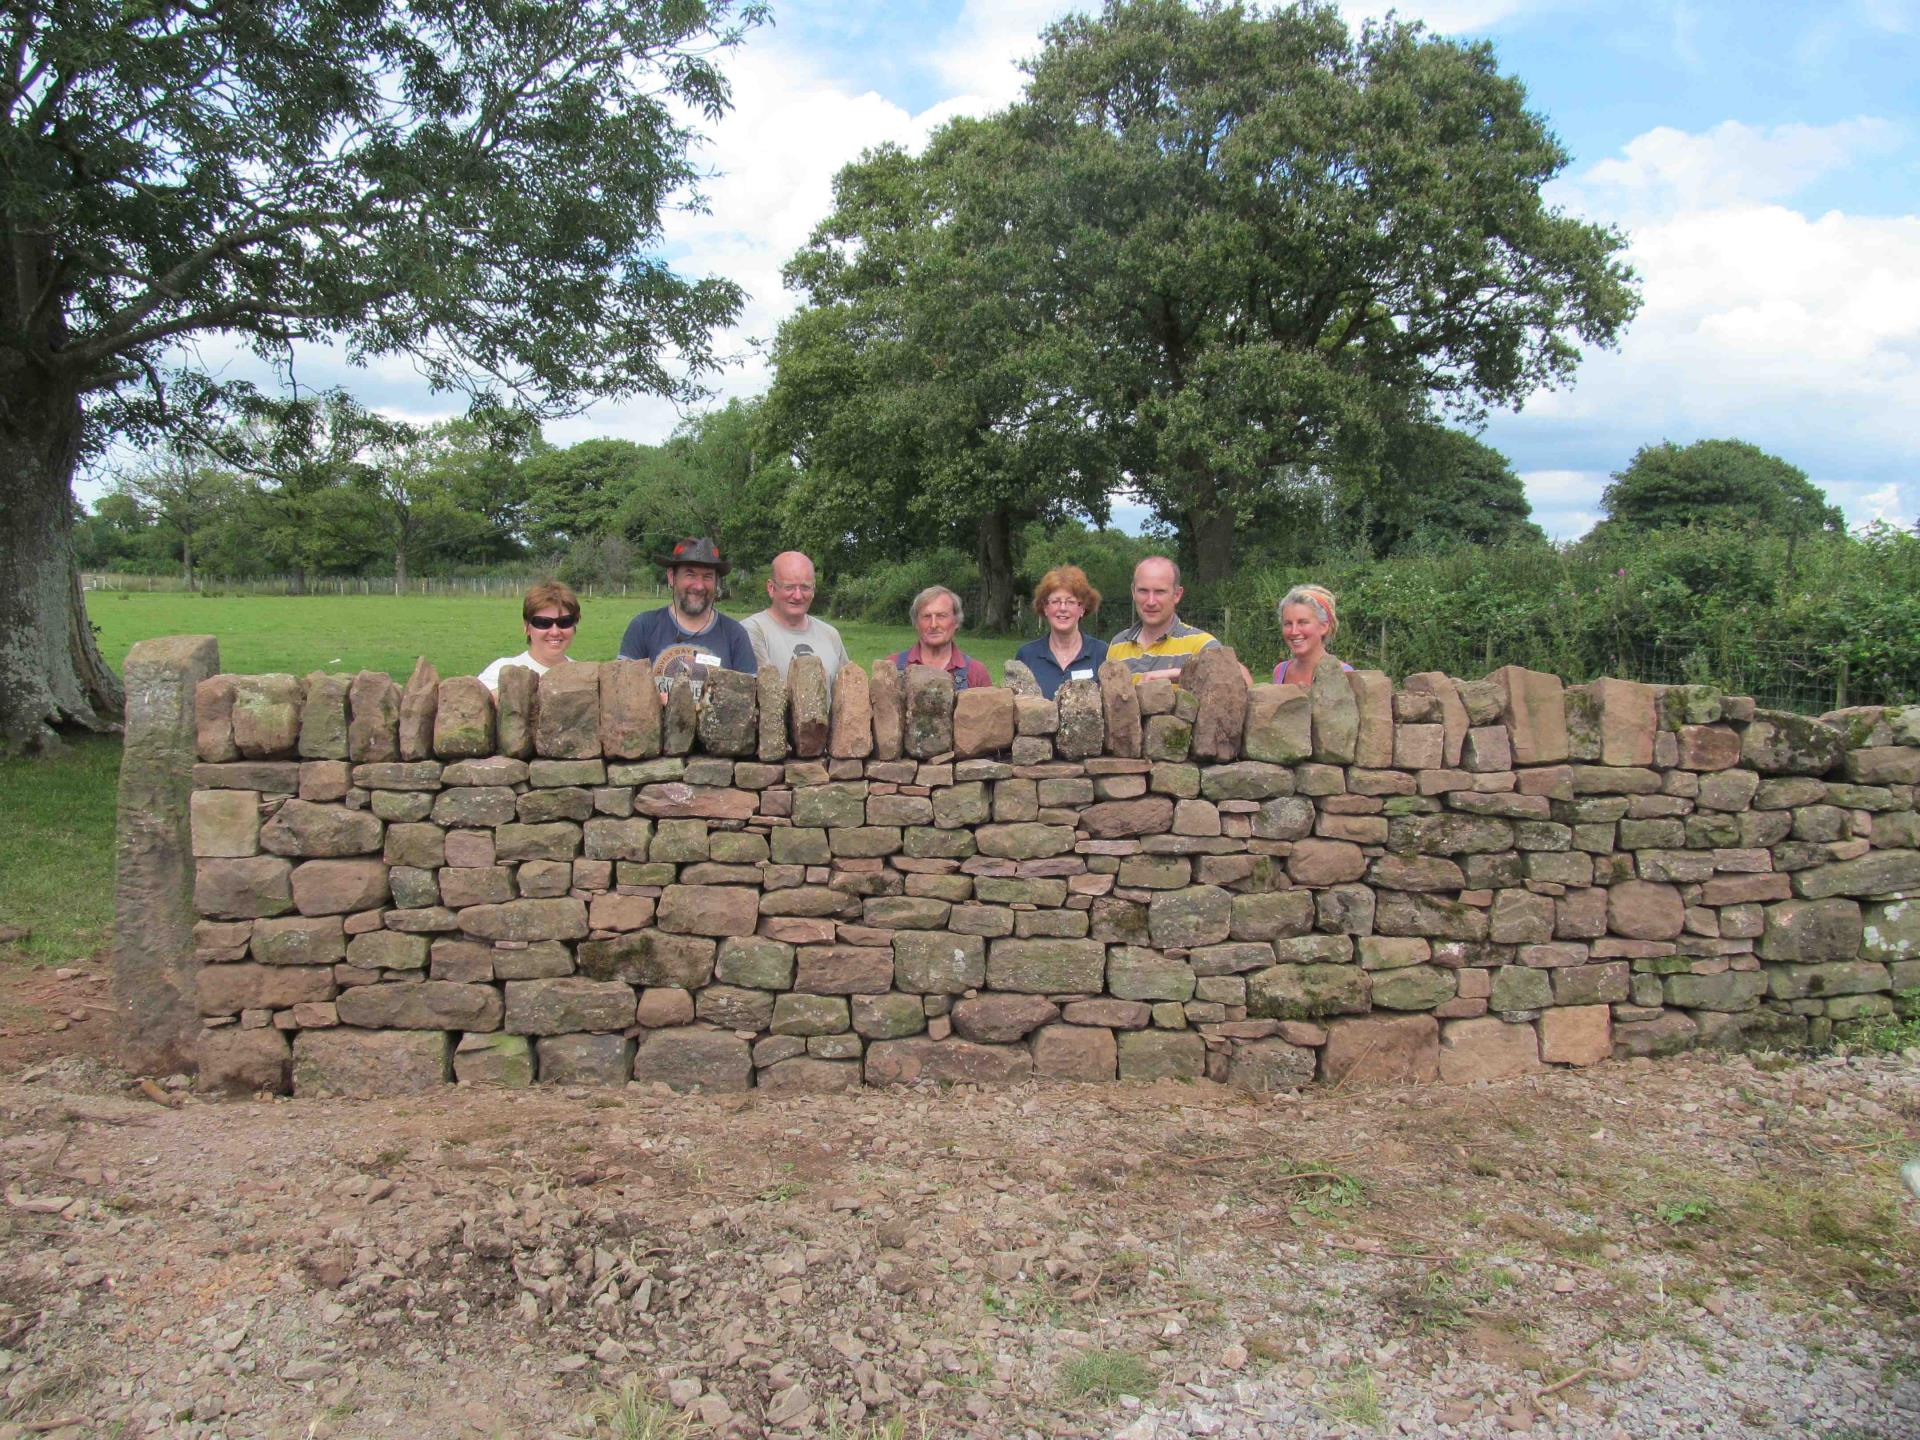 Dry stone walling at Humble by Nature